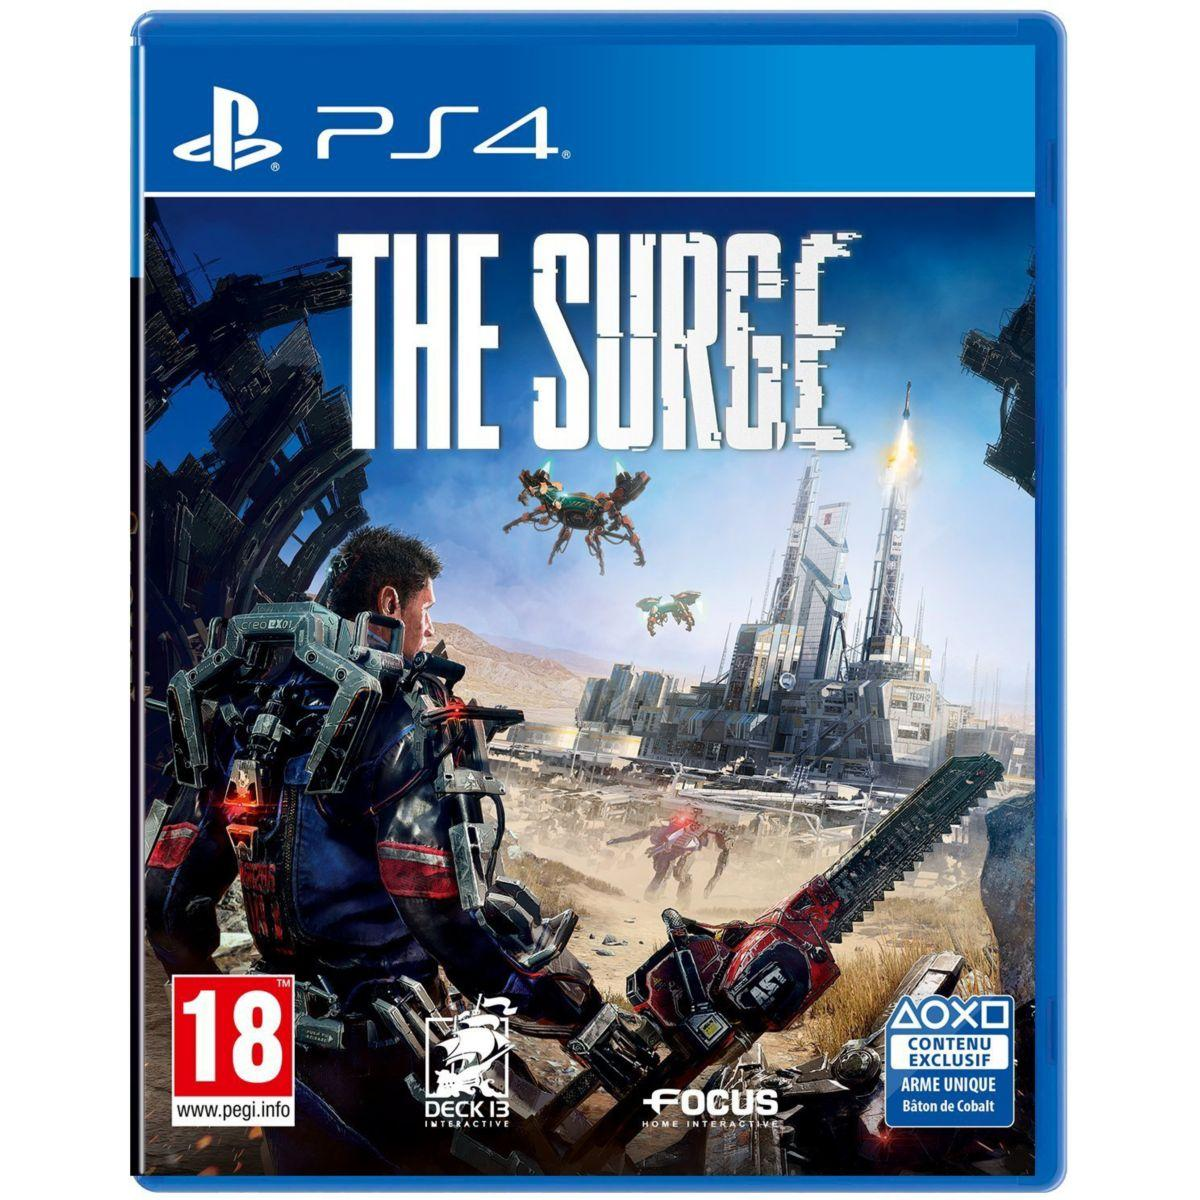 Jeu ps4 focus the surge (photo)